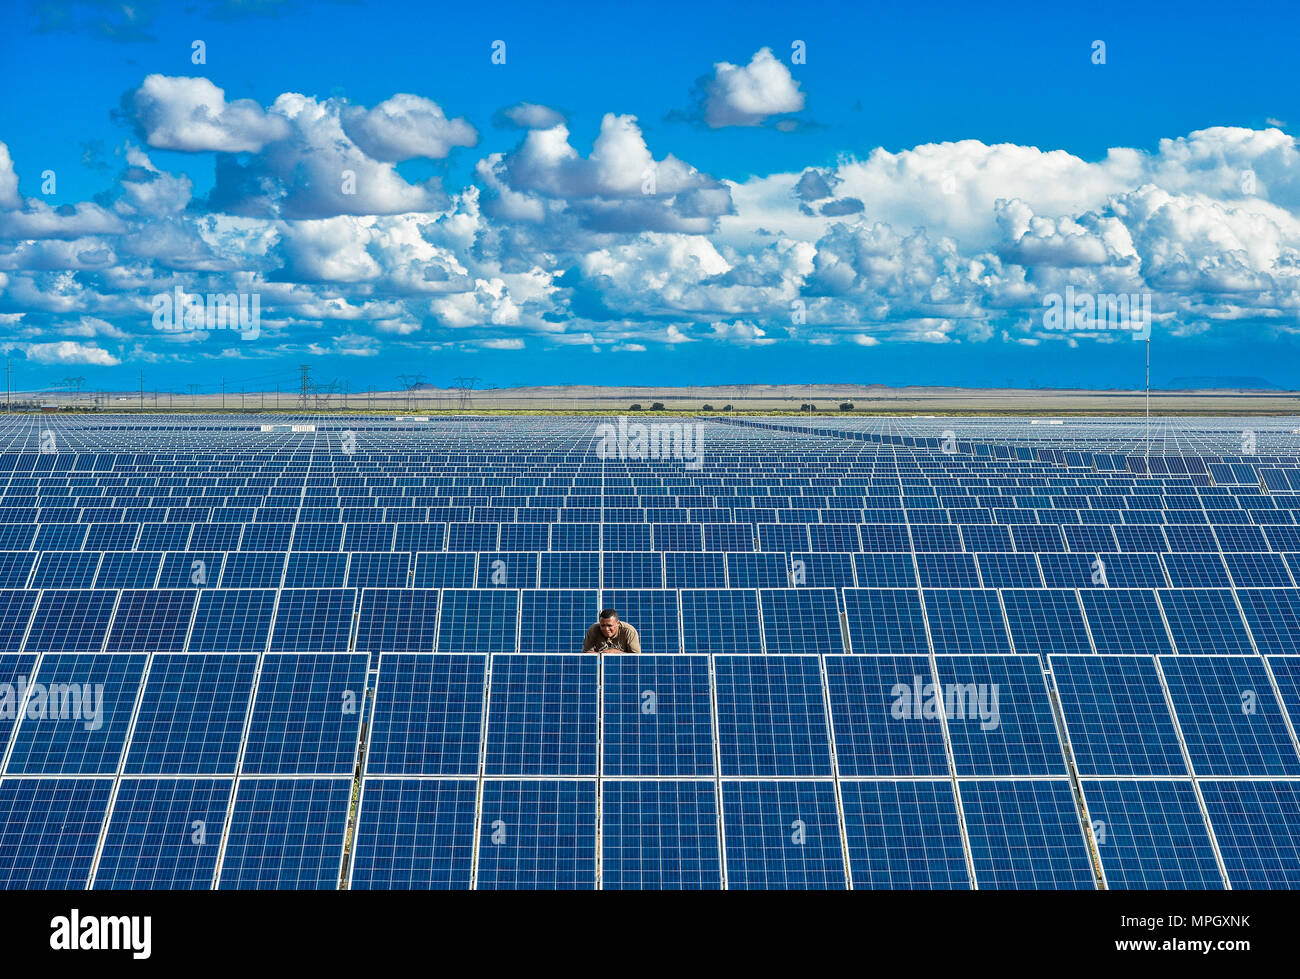 A man checks the solar panels on a solar farm in South Africa - Stock Image